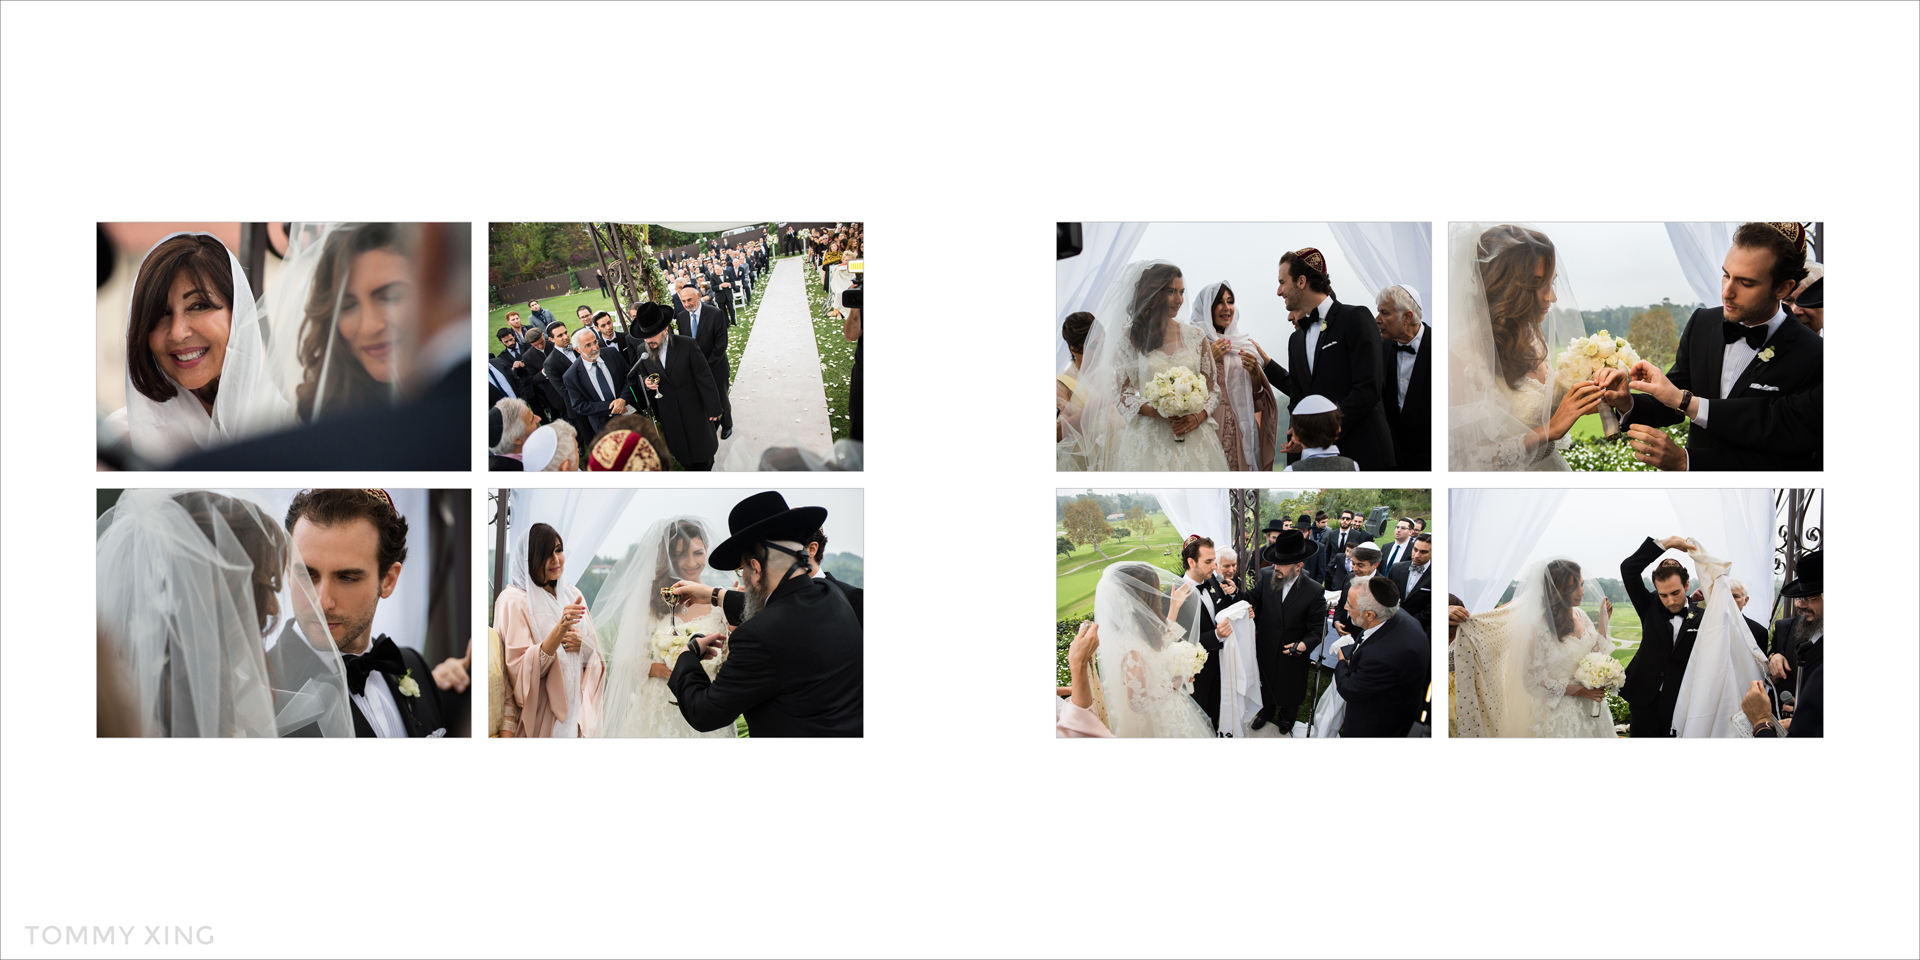 Los Angeles Jewishg Wedding at Riviera Country Club in Pacific Palisades 洛杉矶婚礼婚纱摄影师  Tommy Xing Photography 24.jpg